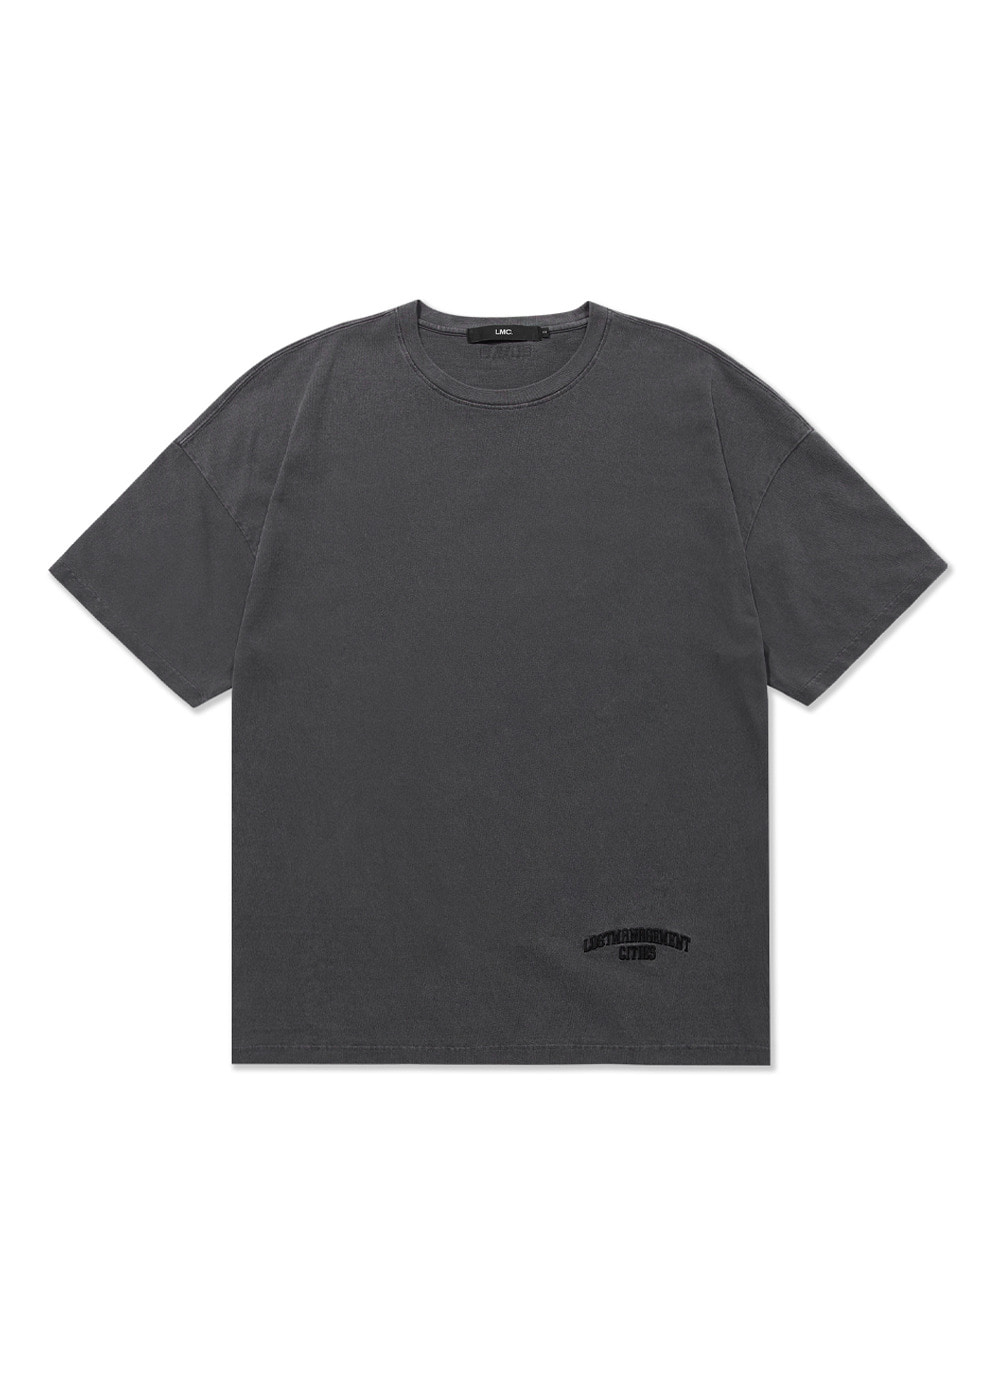 LMC OVERDYED ARCH FN OVERSIZED TEE black